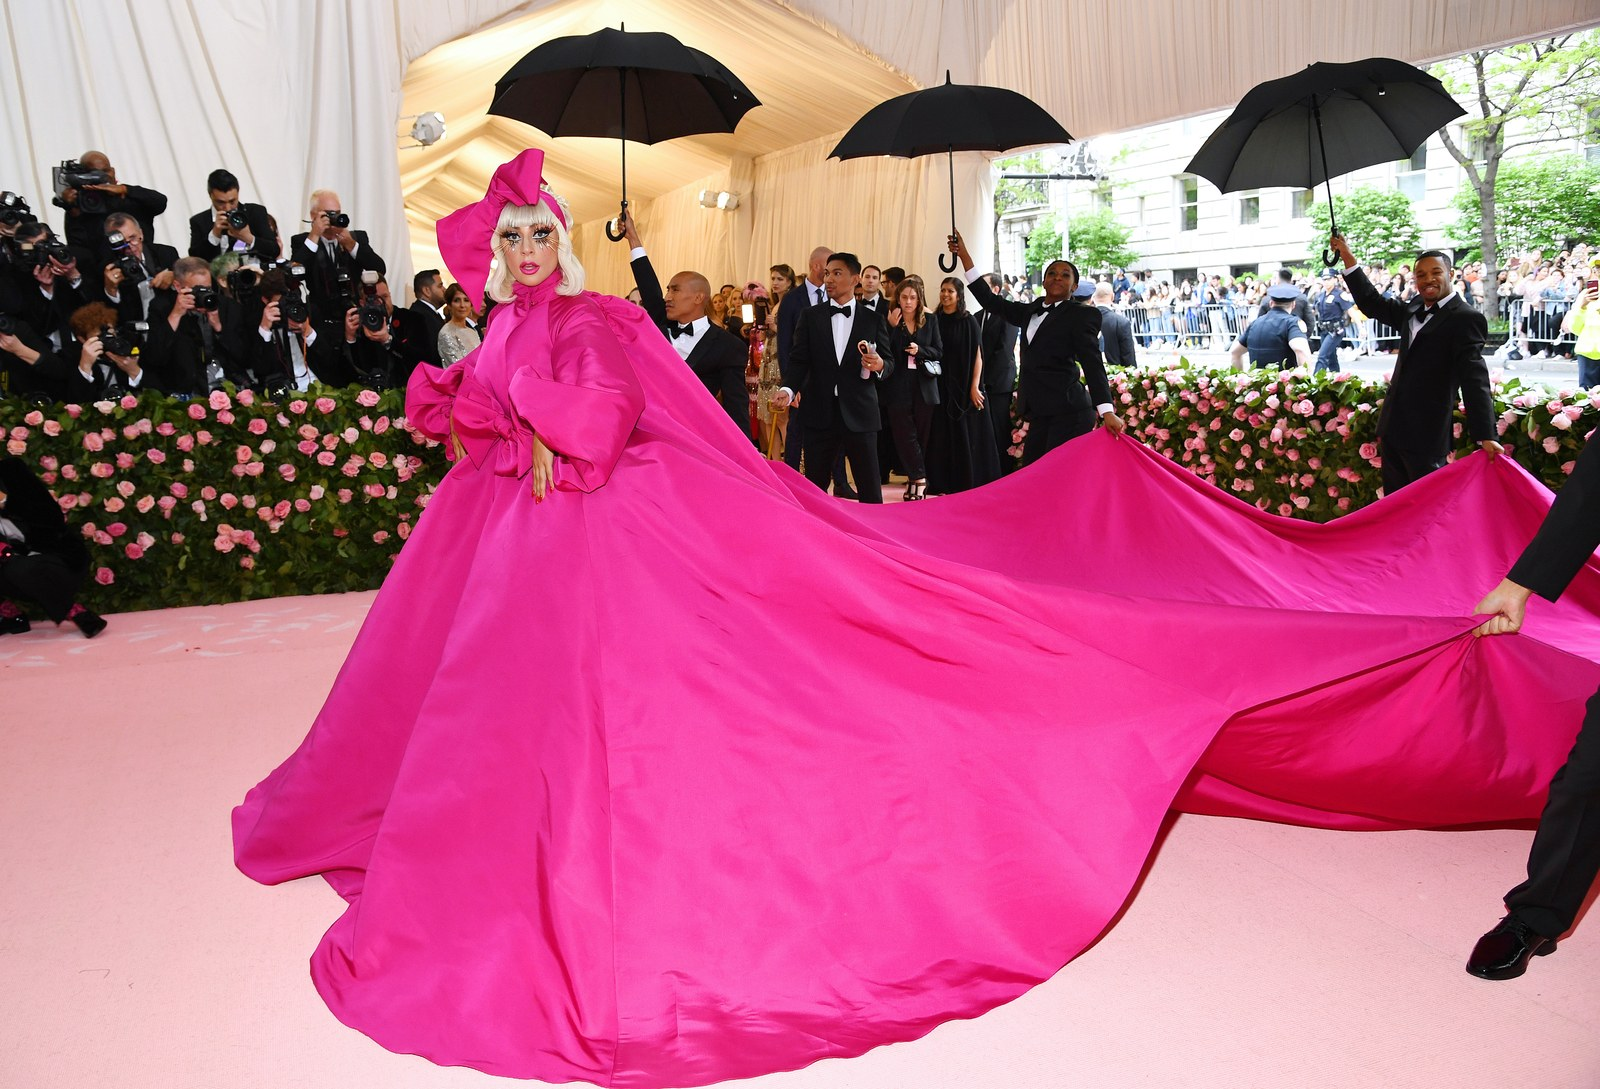 New Trends The Best Of The MET Gala Looks new trends New Trends: The Best Of The MET Gala Looks New Trends The Best Of The MET Gala Looks